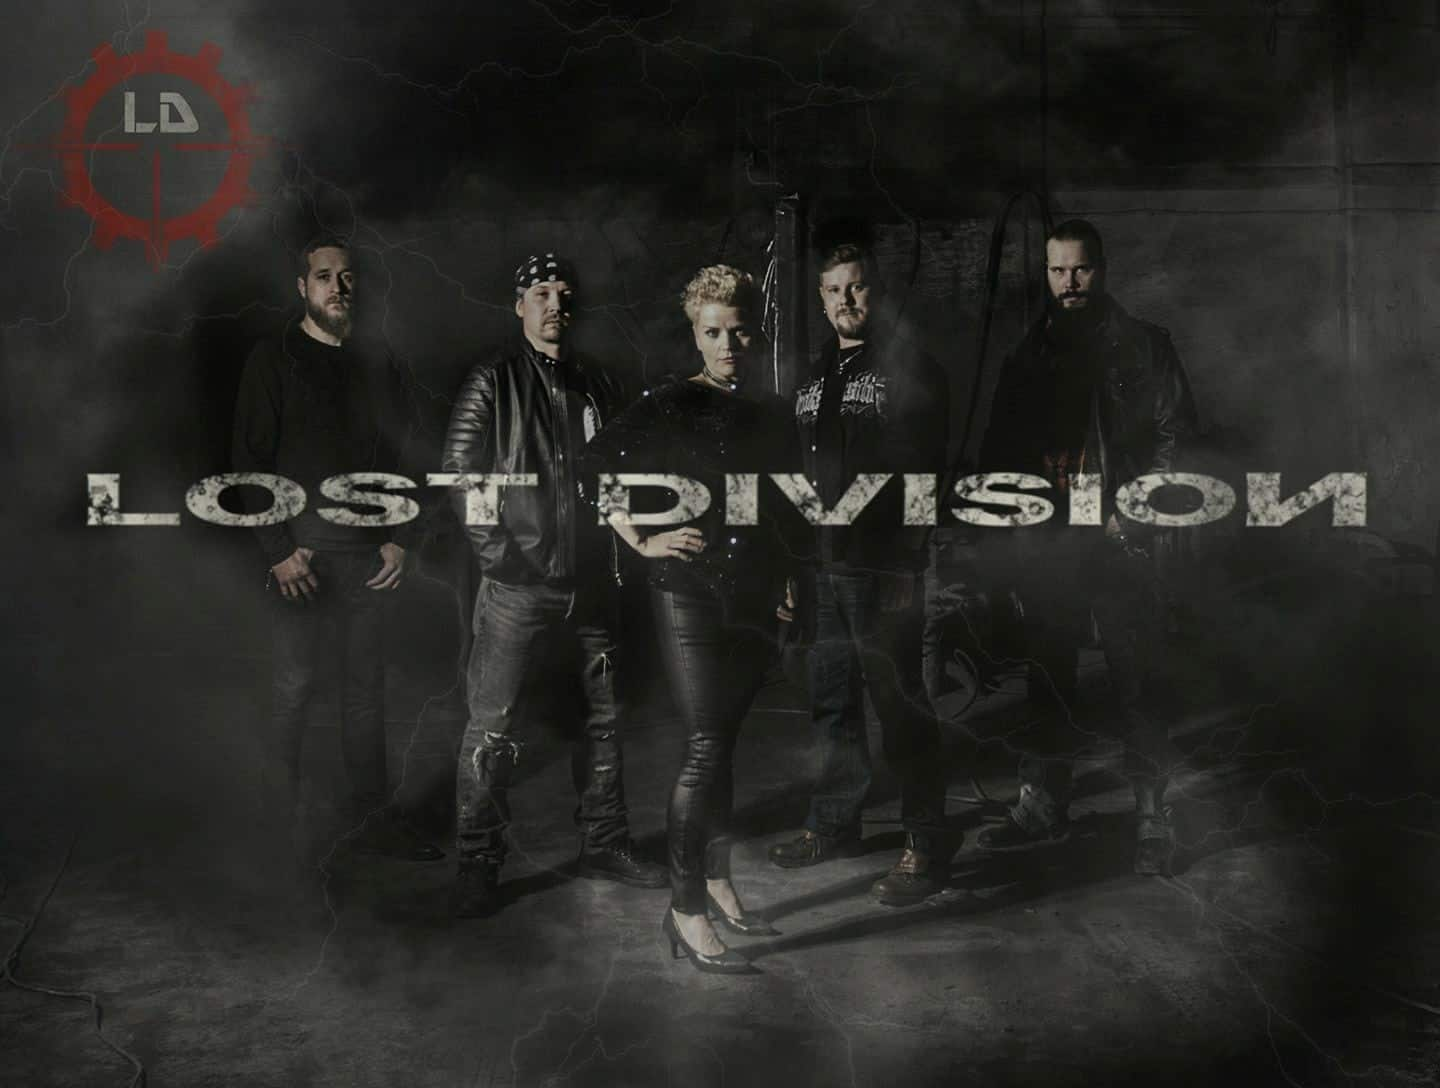 Lost Division